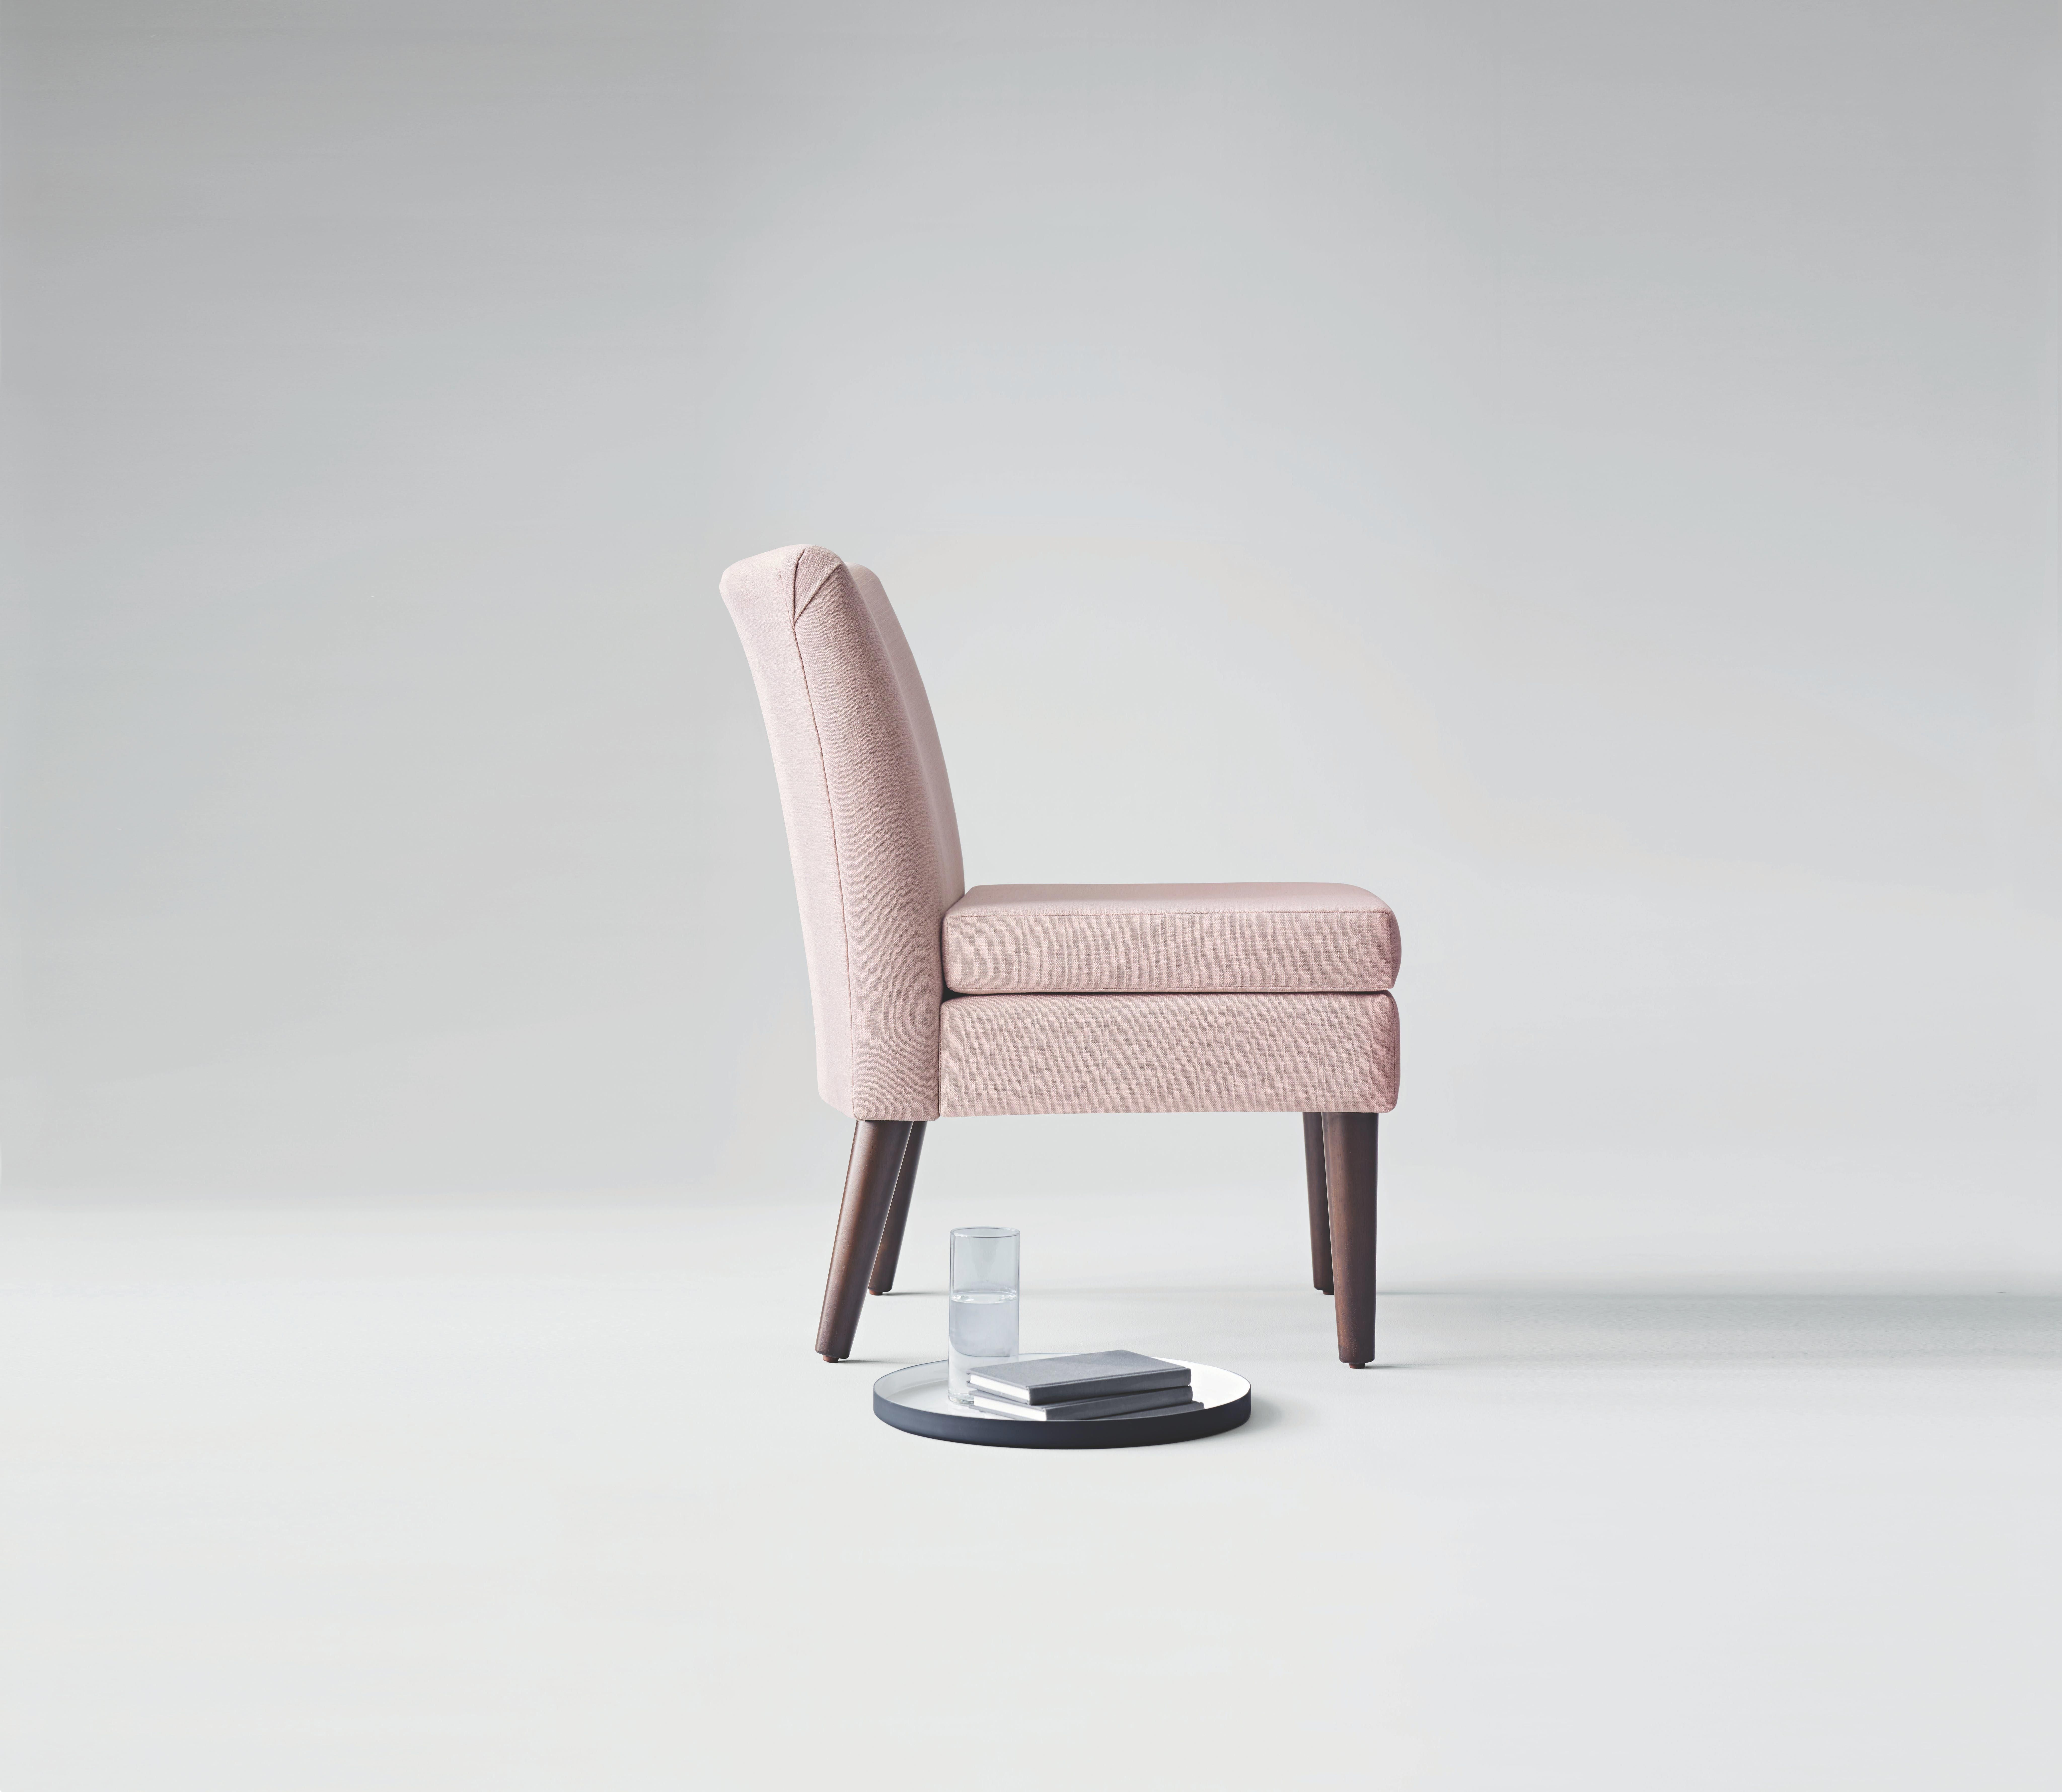 modern slipper chair cool rocking chairs for nursery winnekta in blush upholstery this slim armless is graceful and subtle enough to easily slip anywhere armlesschair